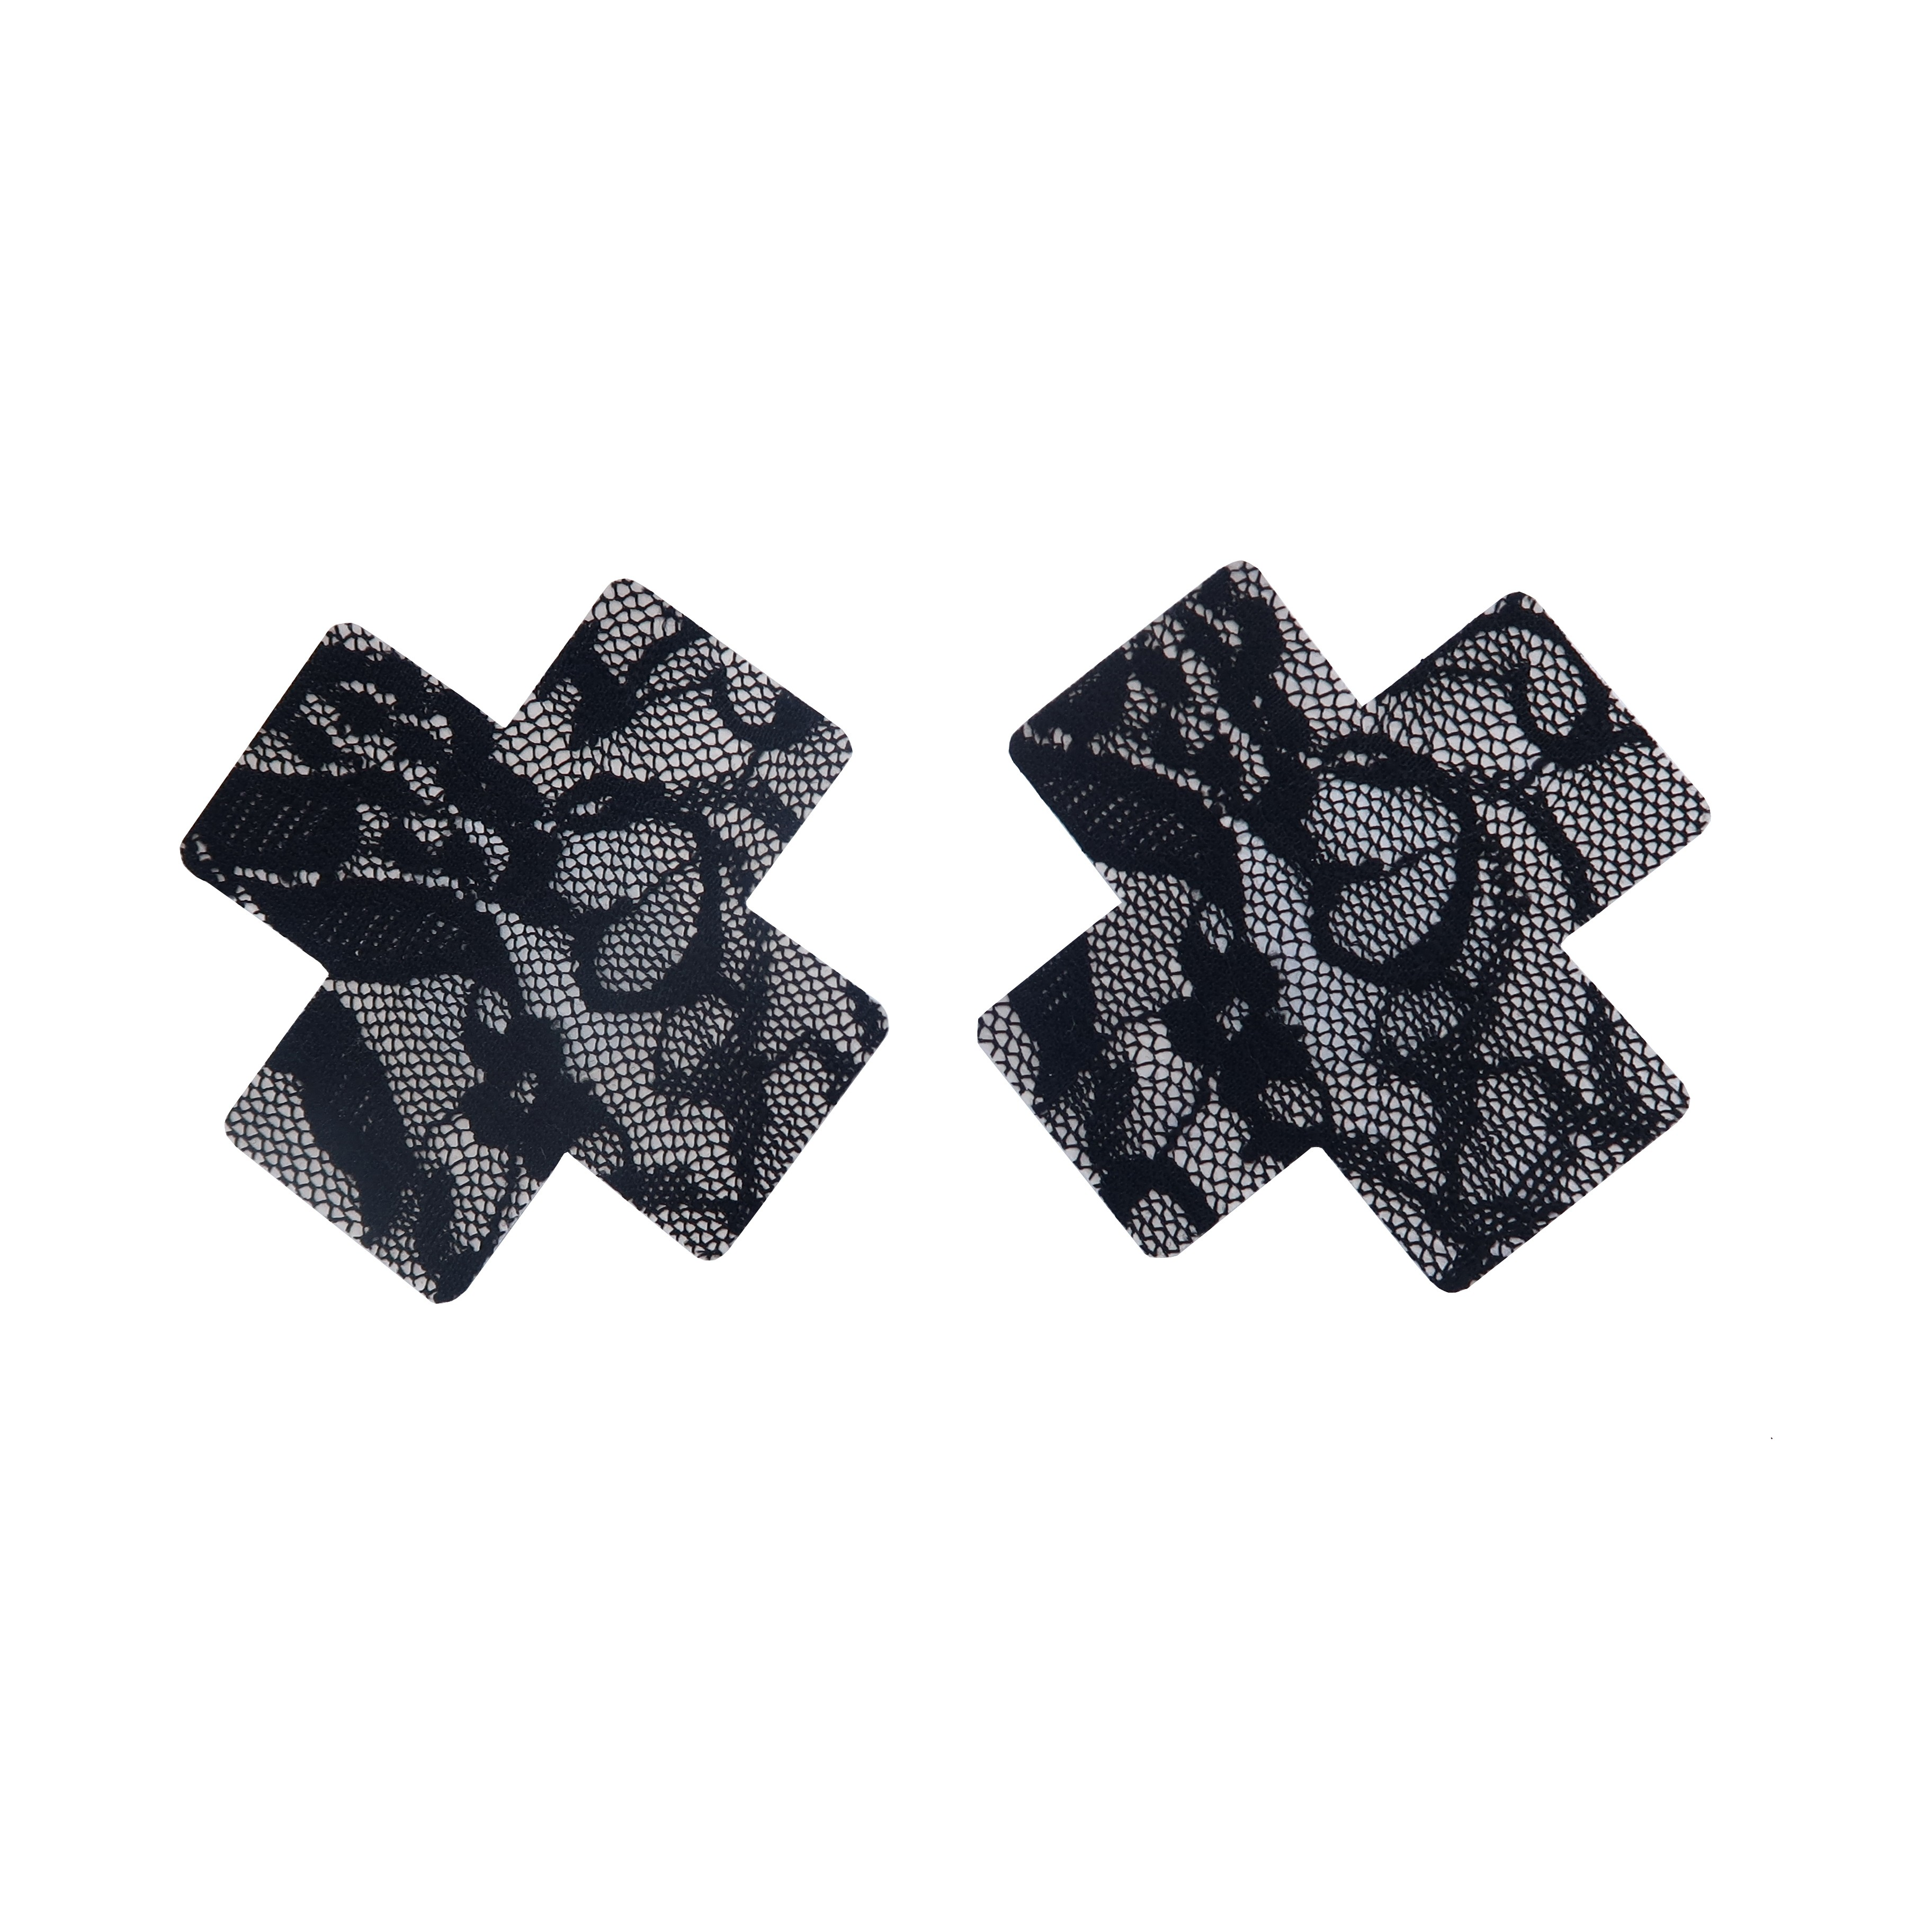 Black Lace Cross Shape Self-Adhesive Disposable Nipple Cover Pasties (25 Pairs/Lot)